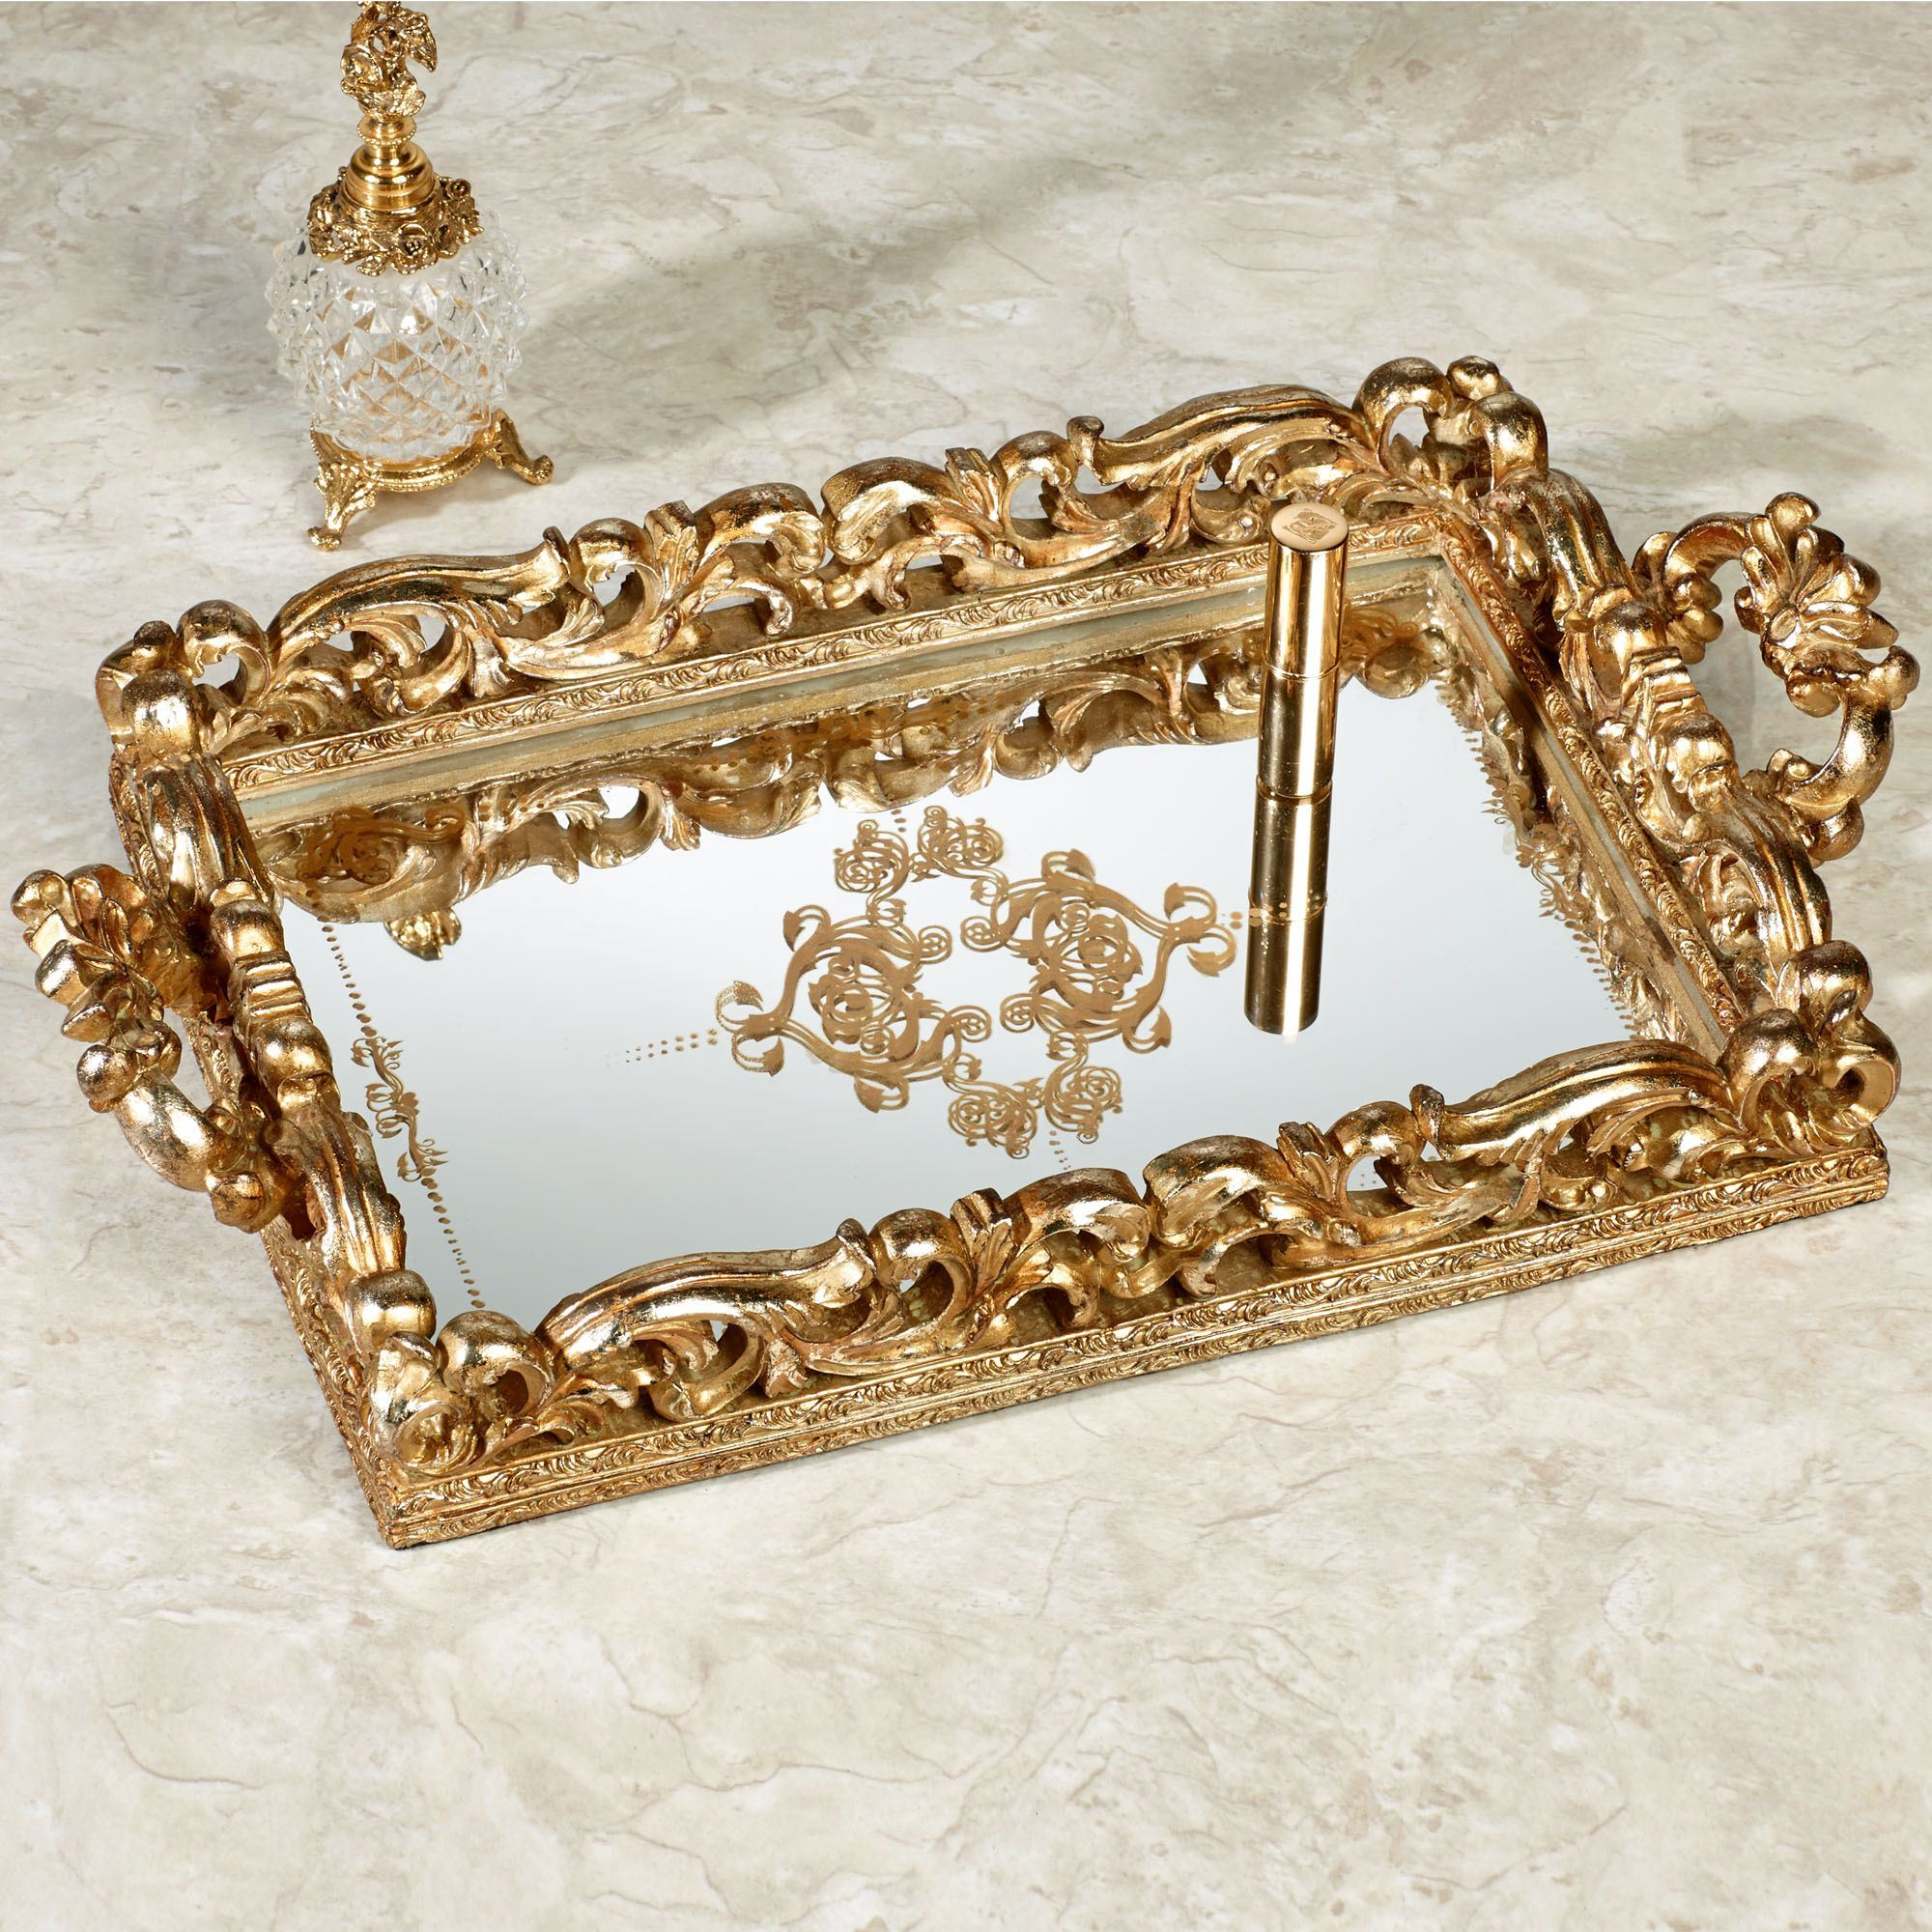 golden mirrored vanity tray alluring mirrored vanity tray admirable mirrored vanity tray